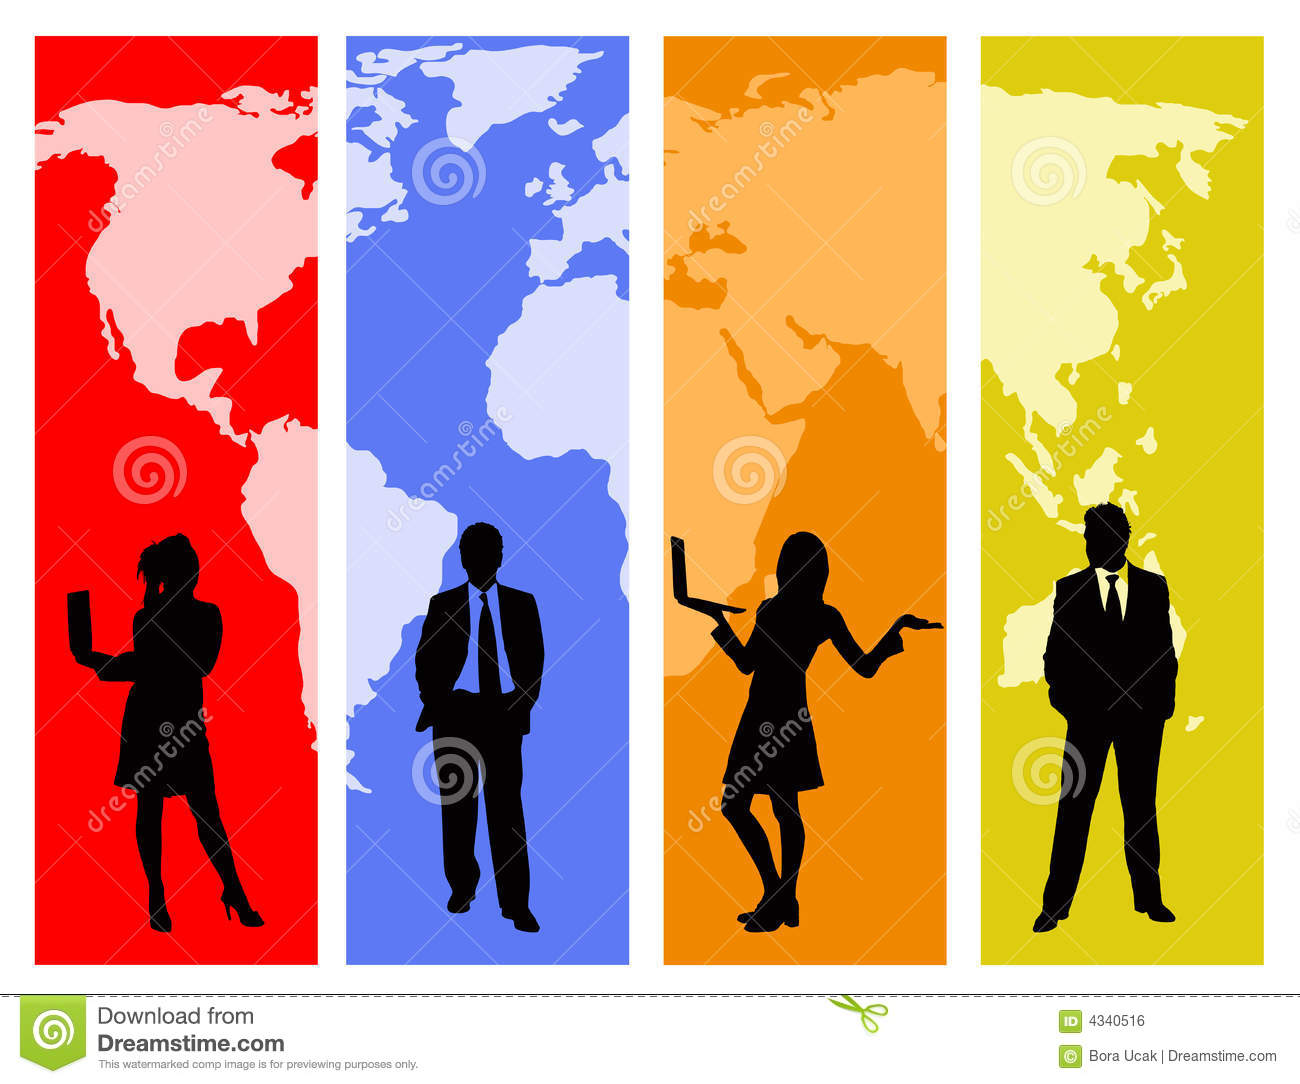 Global business stock vector illustration of globe silhouette download global business stock vector illustration of globe silhouette 4340516 gumiabroncs Images